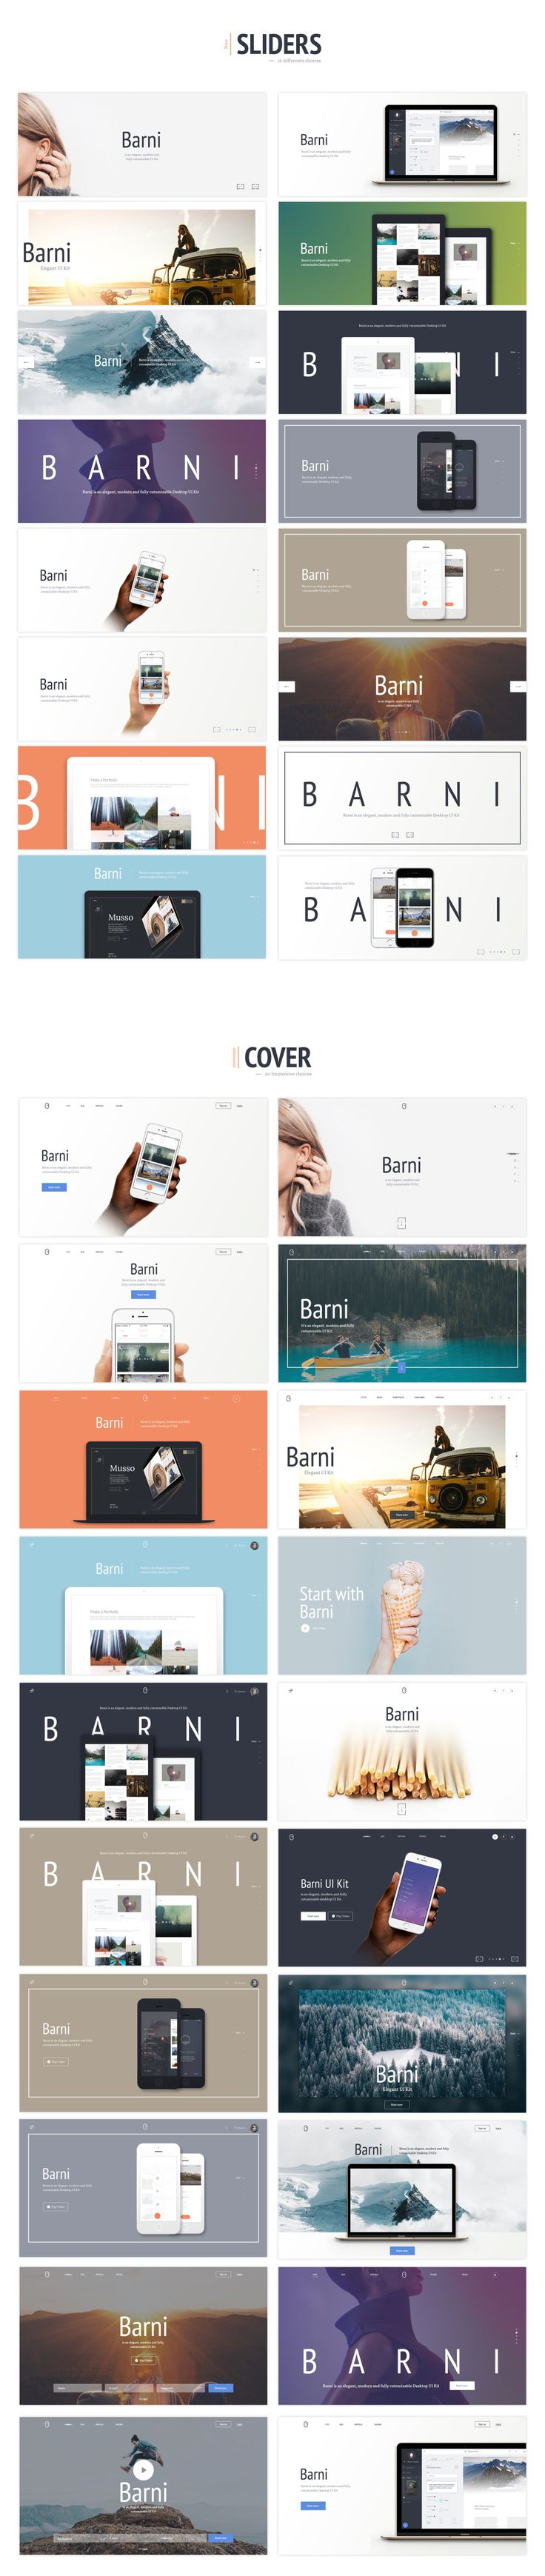 Barni for ecommerce is the third part of this Barni UI series. IIt's made out of a huge choice of 120+ awesome components specially designed for online selling. Barni for e-shop comes with exclusive components like product pages, e-shop product, Cover product login process and also with common components (Sliders, Covers , Contents and Navigation).